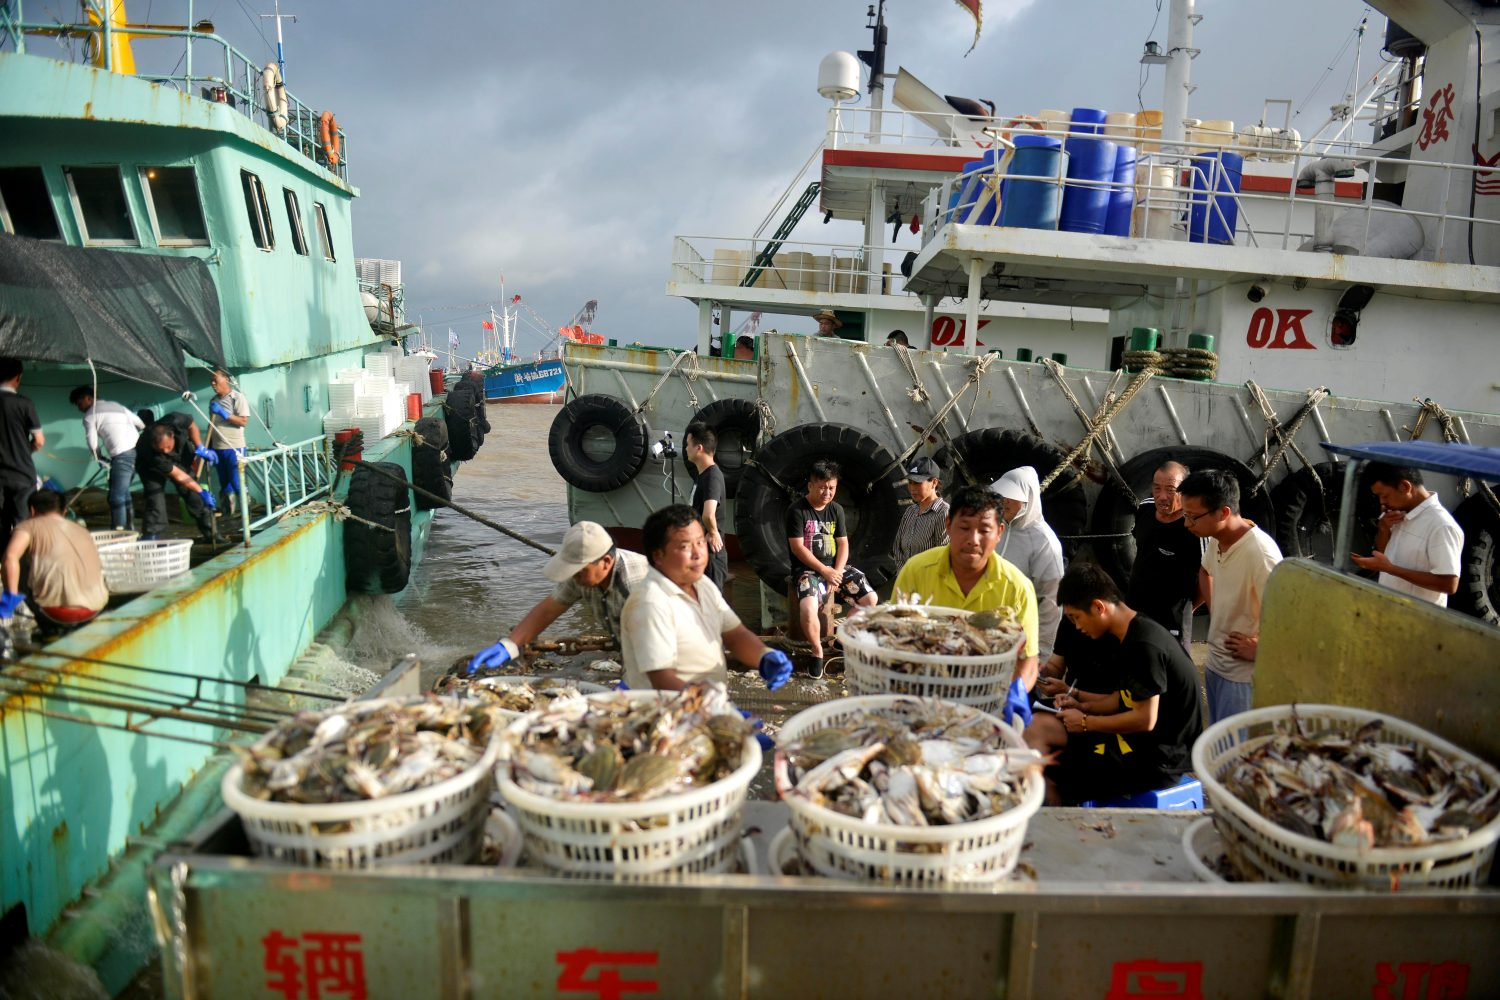 Workers unload seafood from fishing boats before super typhoon Lekima makes landfall in Zhoushan, Zhejiang province, China August 8, 2019. Picture taken August 8, 2019. REUTERS/Stringer